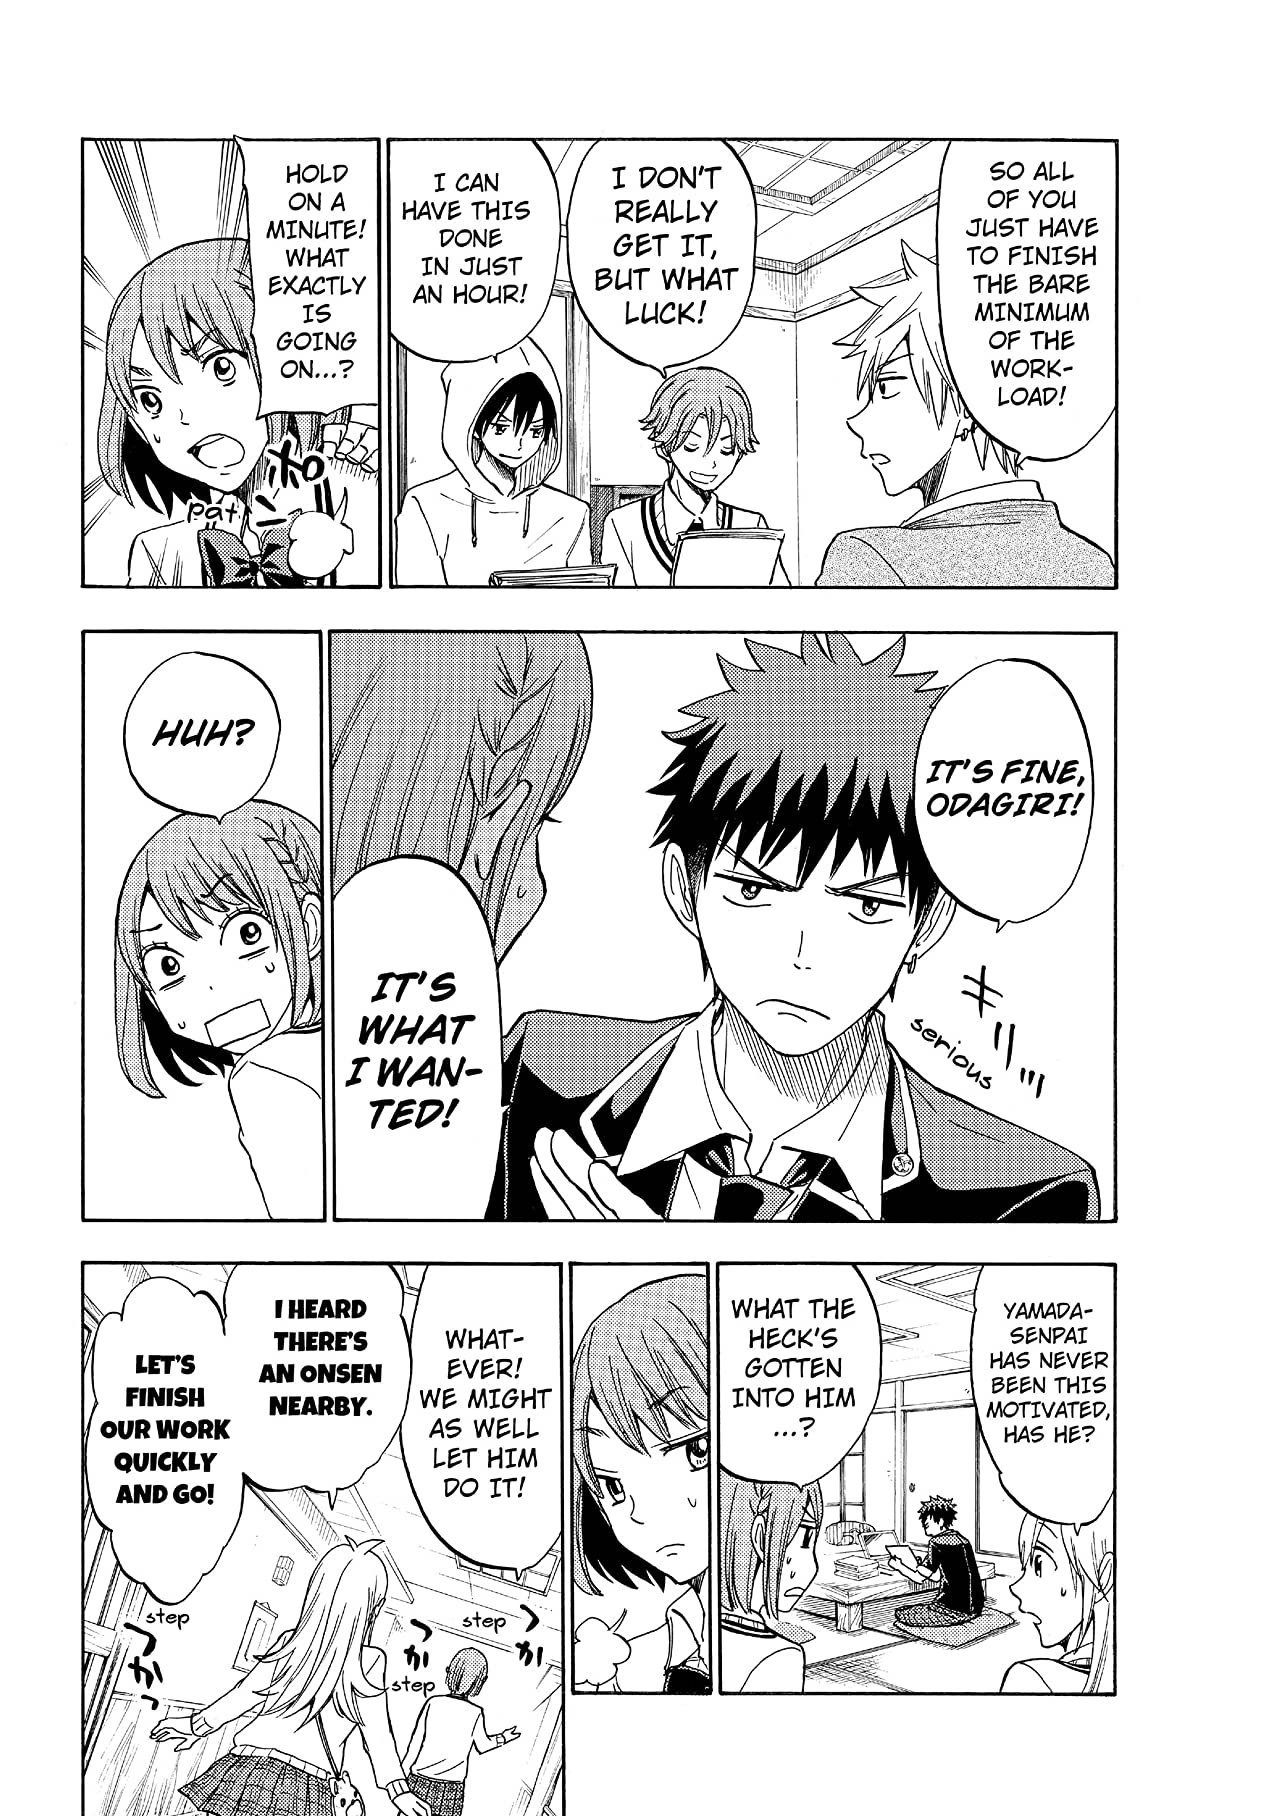 Yamada-kun and the Seven Witches #115